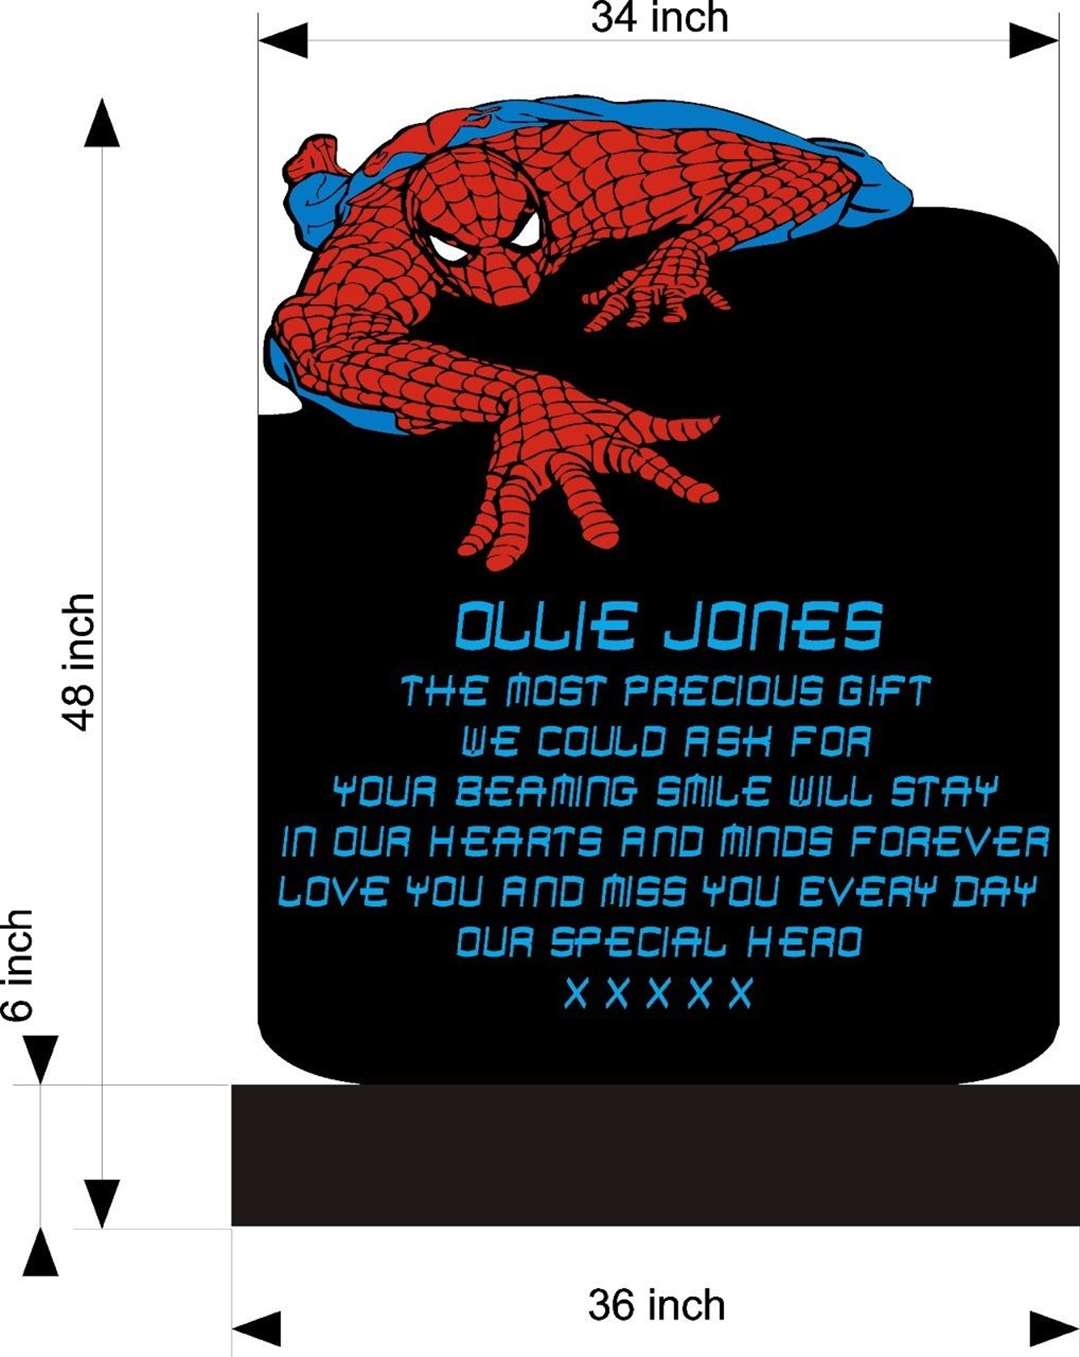 An early design of Ollie Jones' Spider-Man headstone (12956541)